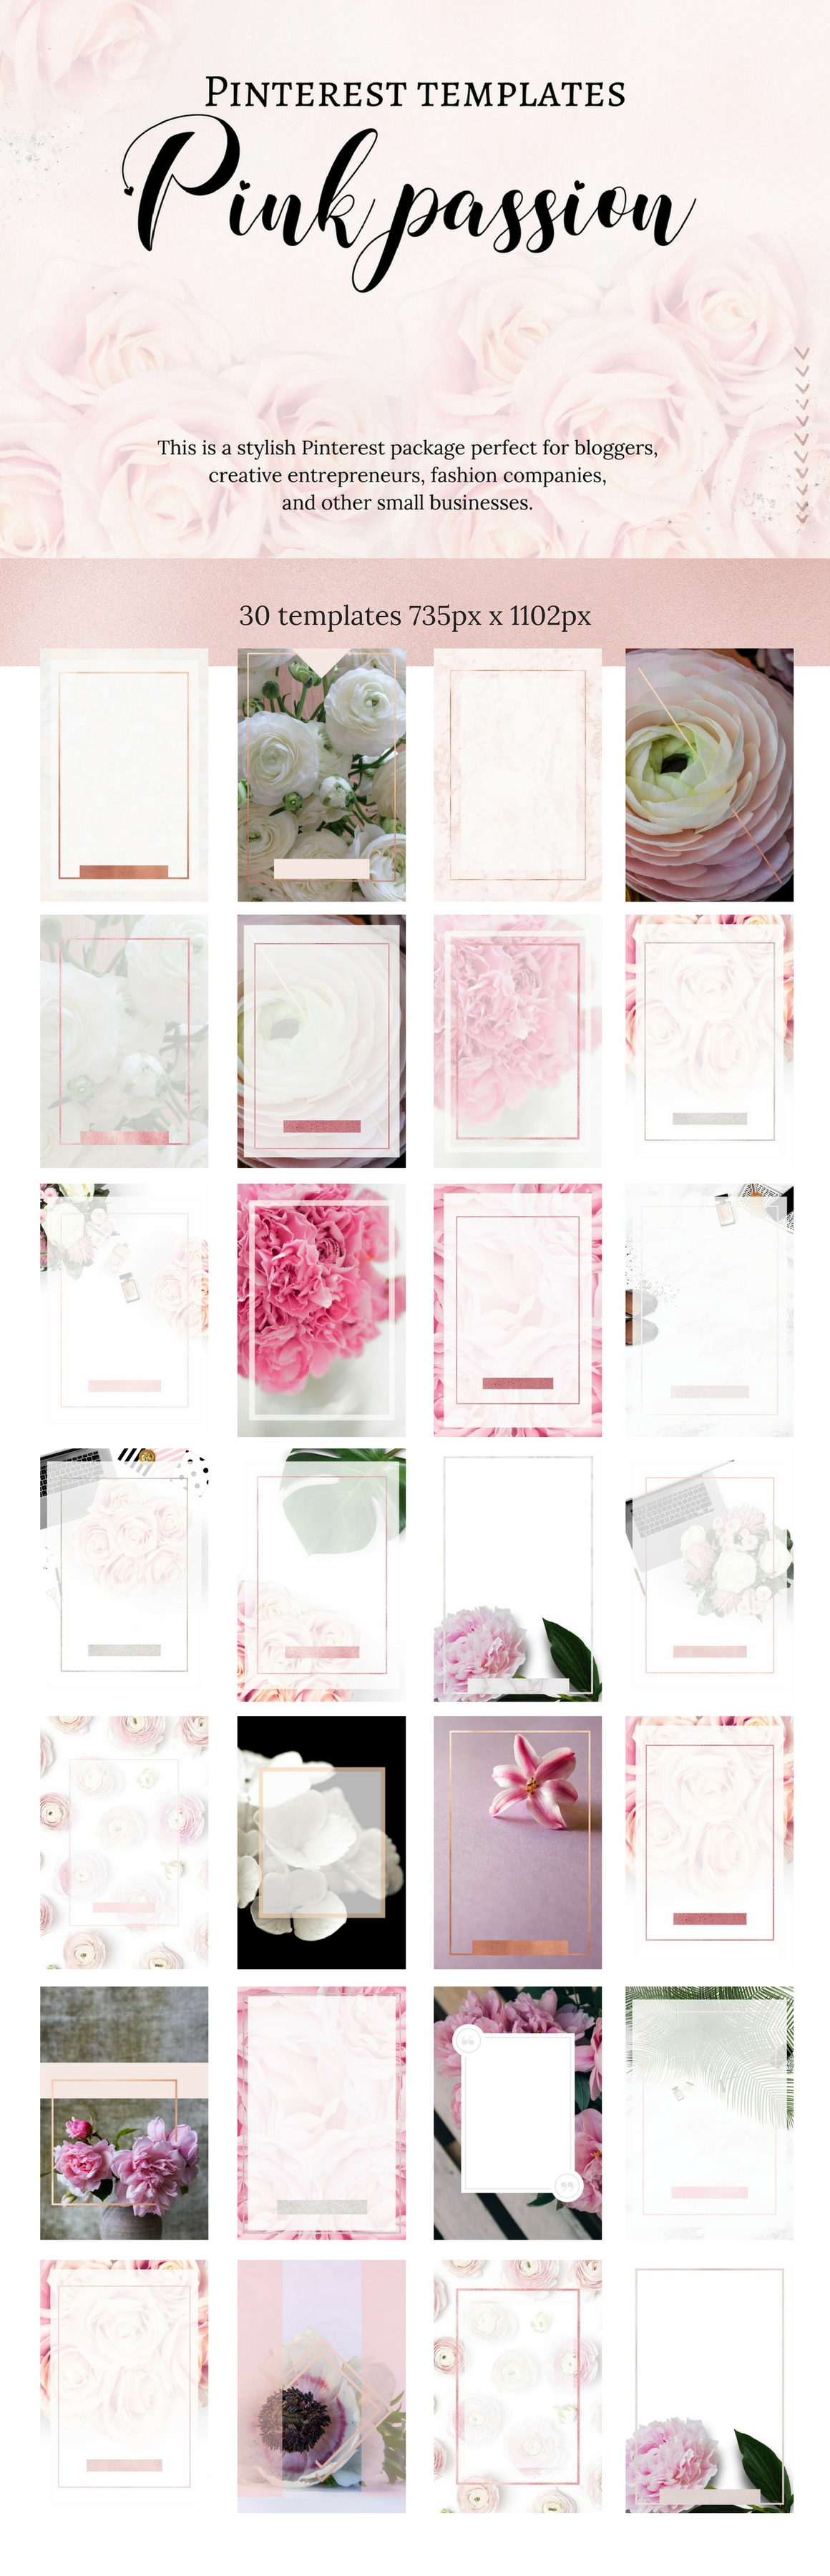 Pinterest templates- Pink passion example image 3